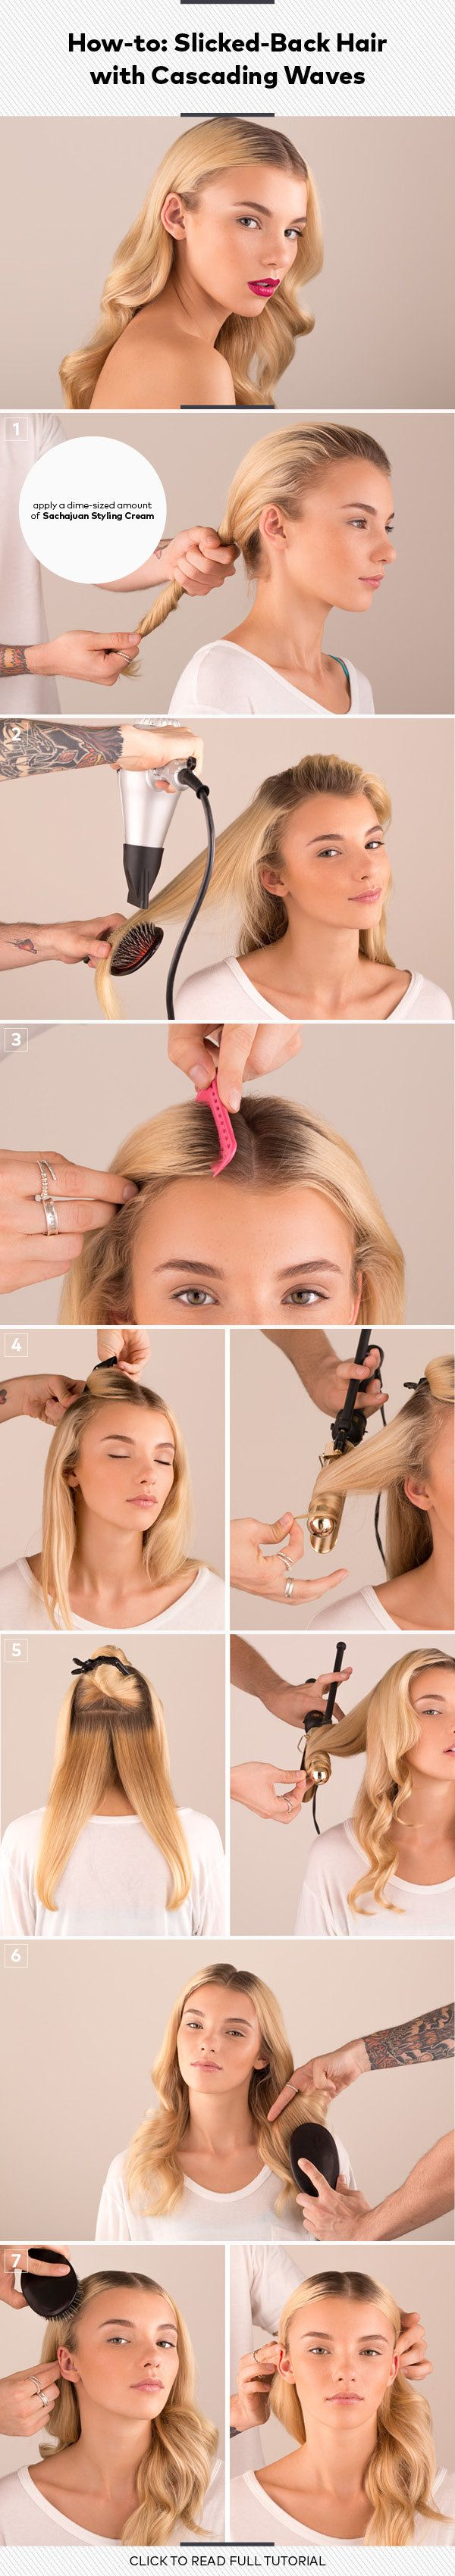 How-to: Slicked-Back Hair with Cascading Waves